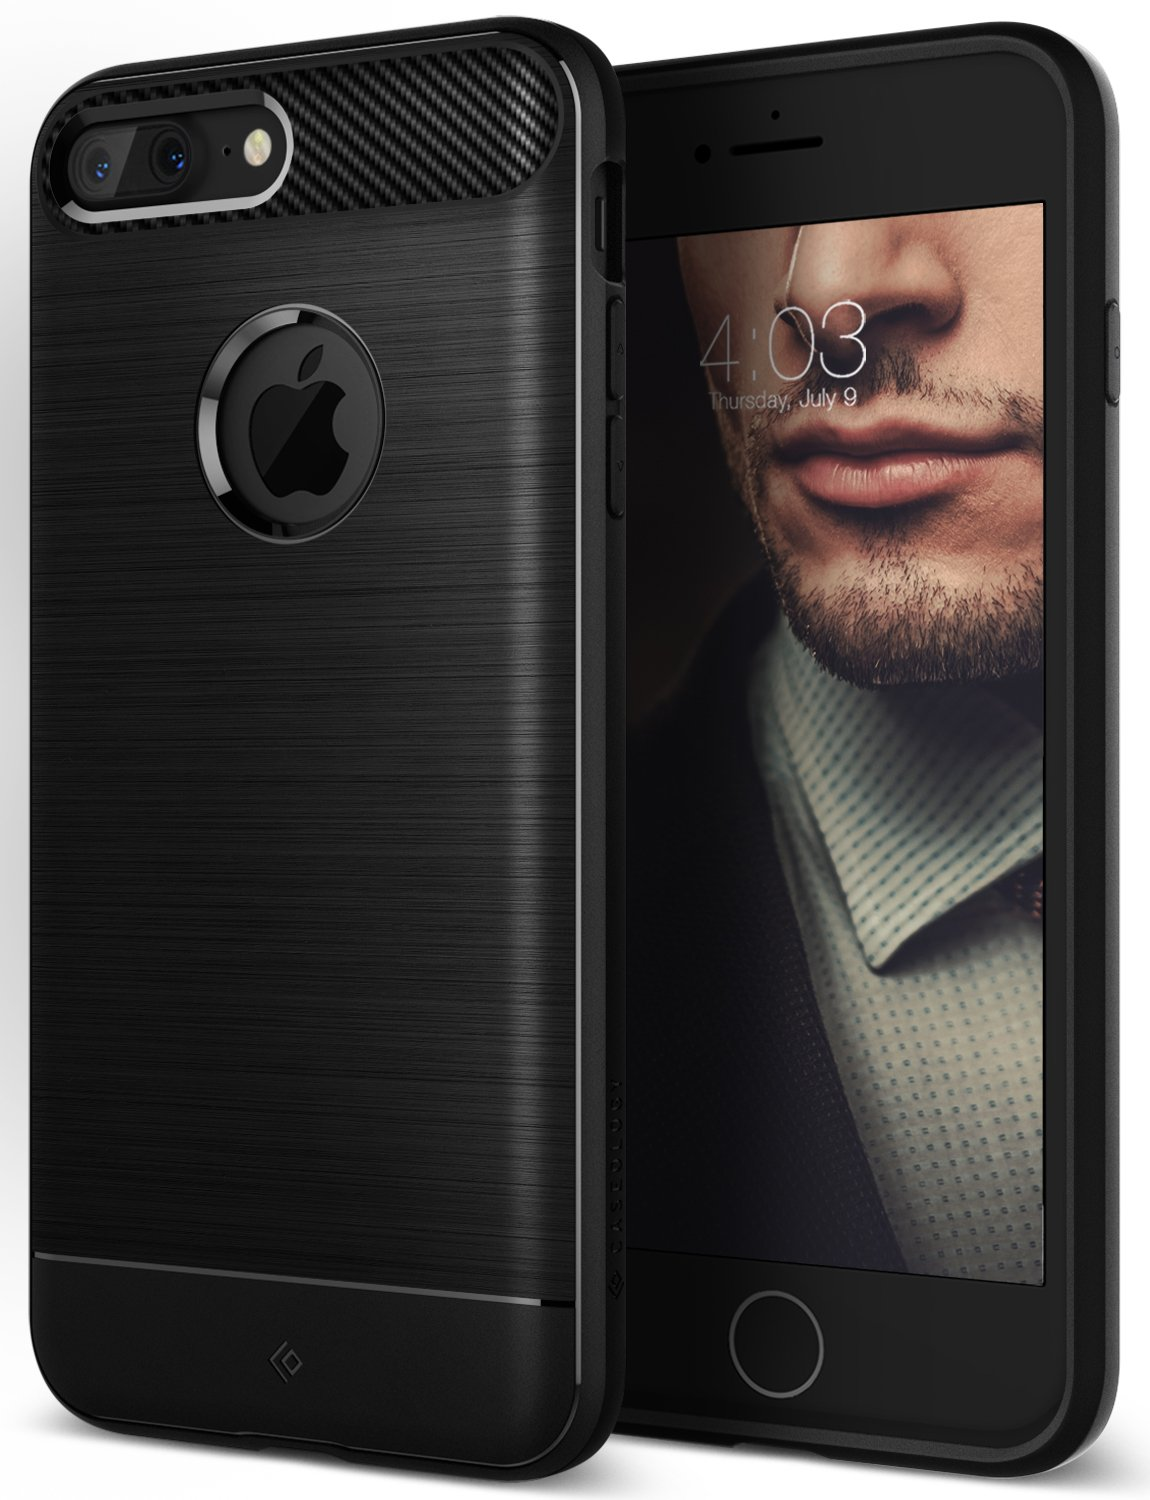 iphone 7 plus case luxury mens. Black Bedroom Furniture Sets. Home Design Ideas